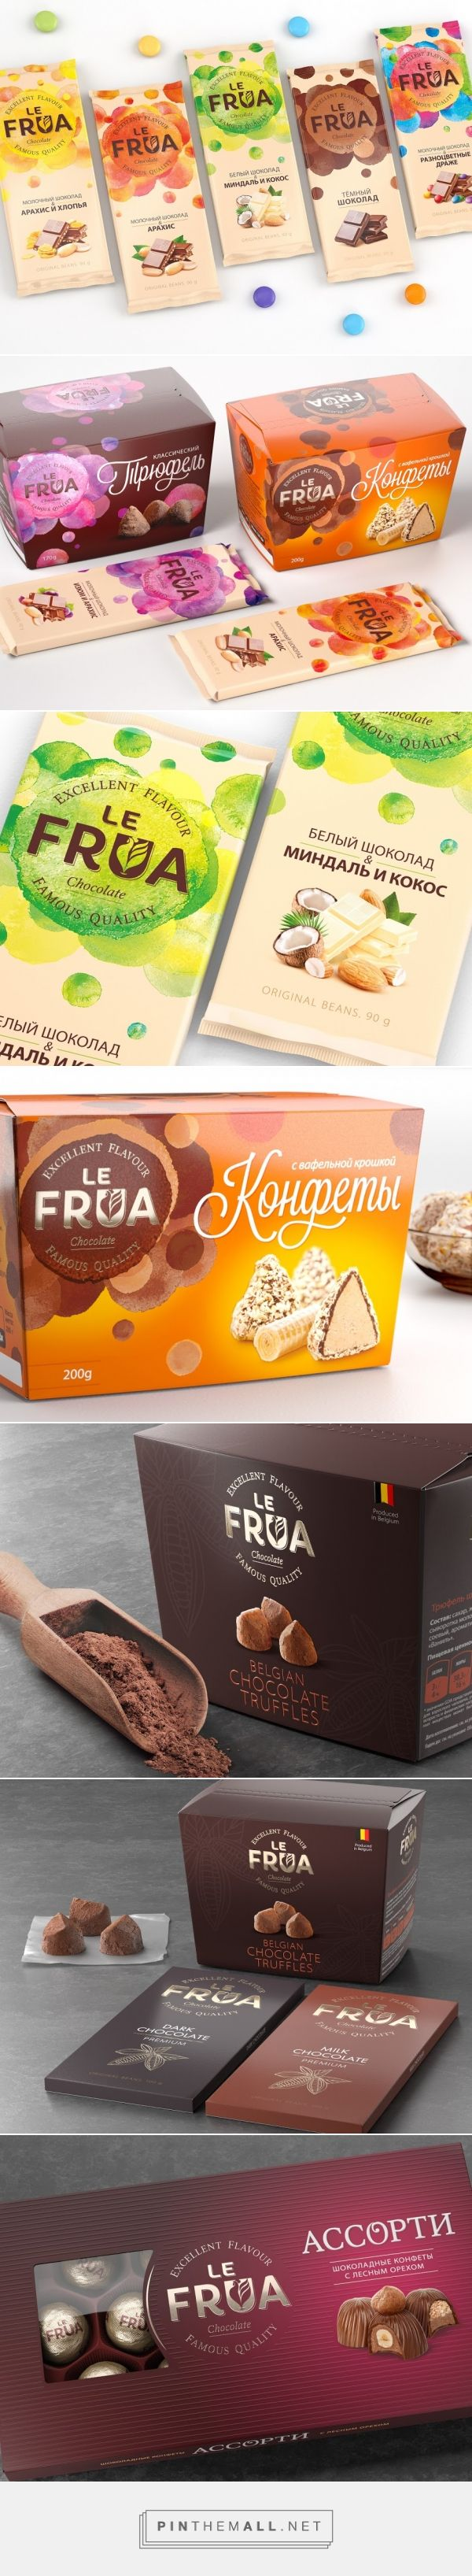 Le Frua Redesign - Packaging of the World - Creative Package Design Gallery - http://www.packagingoftheworld.com/2016/05/le-frua-redesign.html